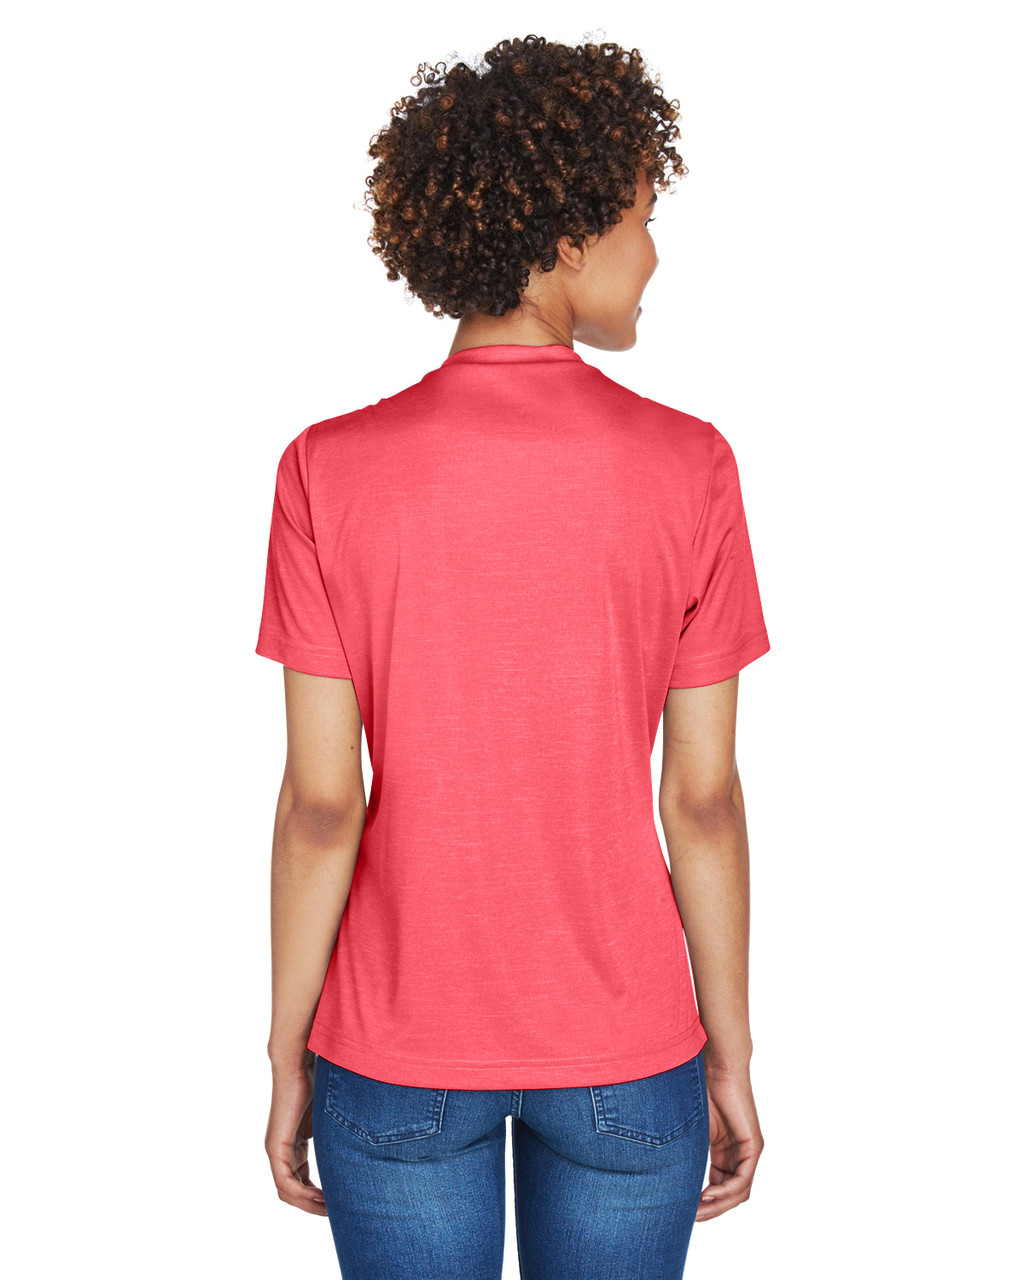 Sport Red Heather - Back, TT11HW Team 365 Ladies' Sonic Heather Performance T-Shirt | BlankClothing.ca